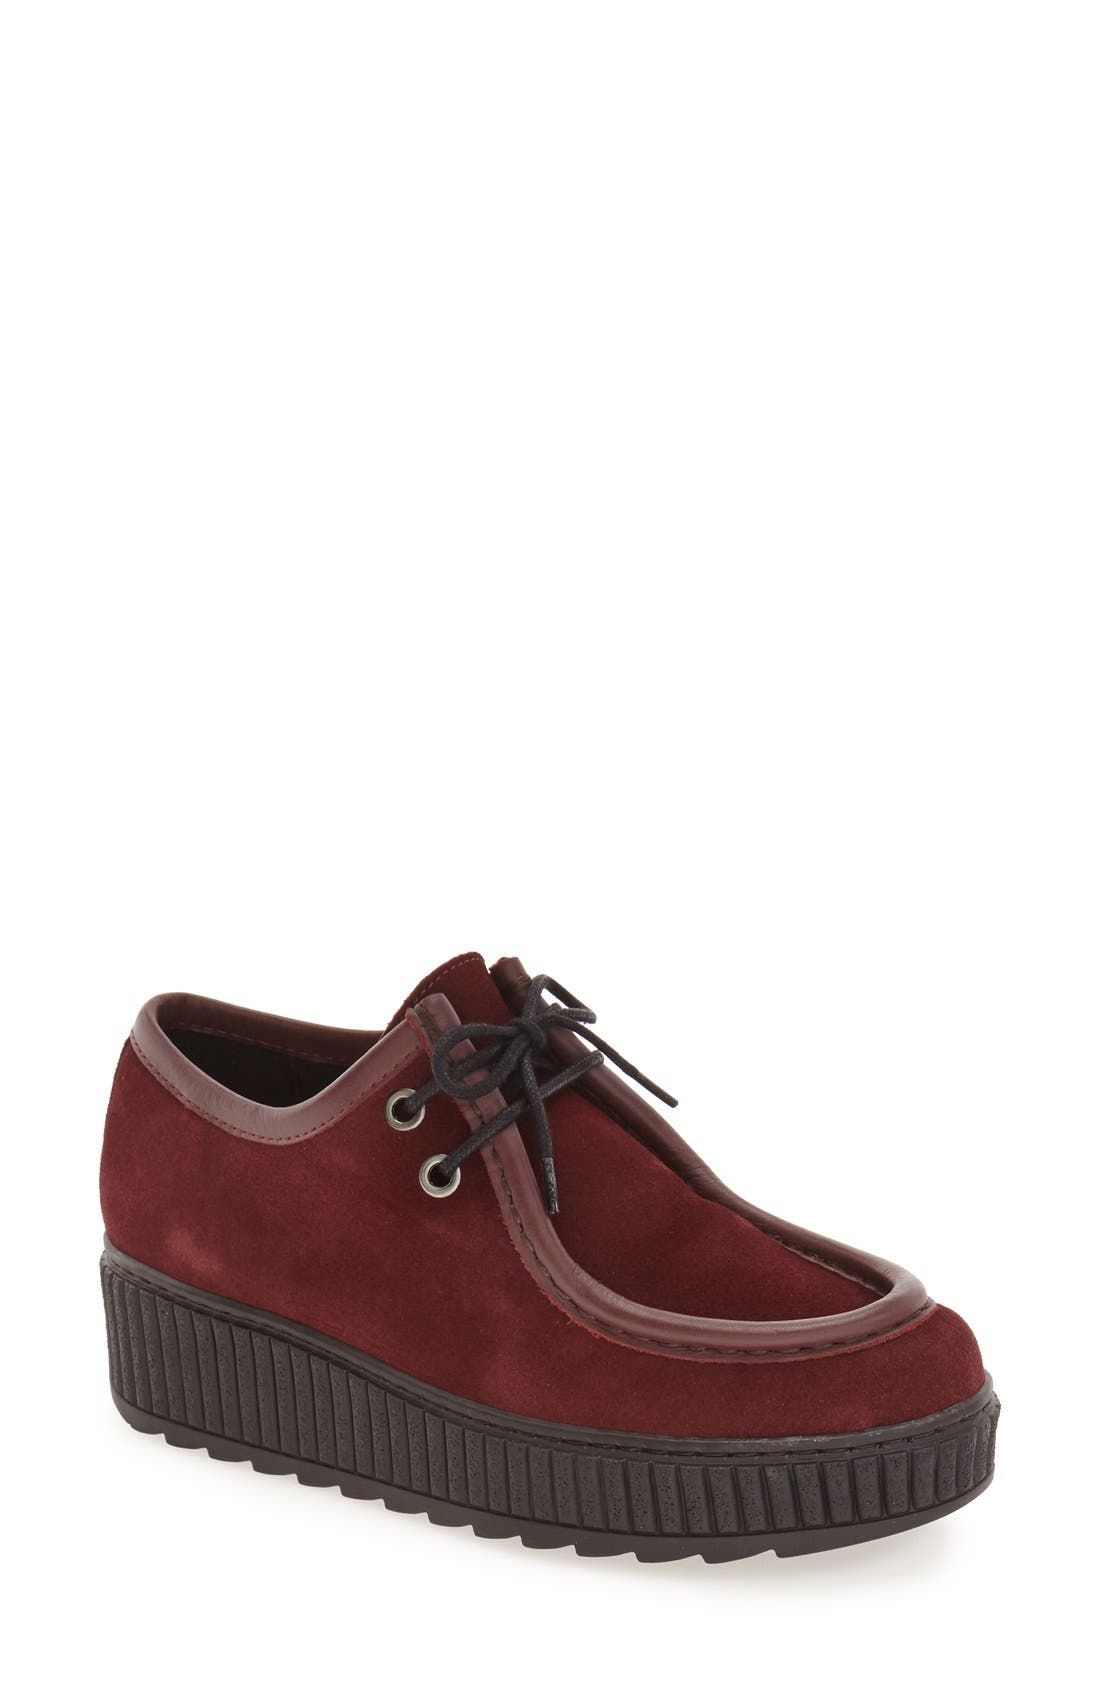 SHELLYS LONDON 'Kyra' Creeper